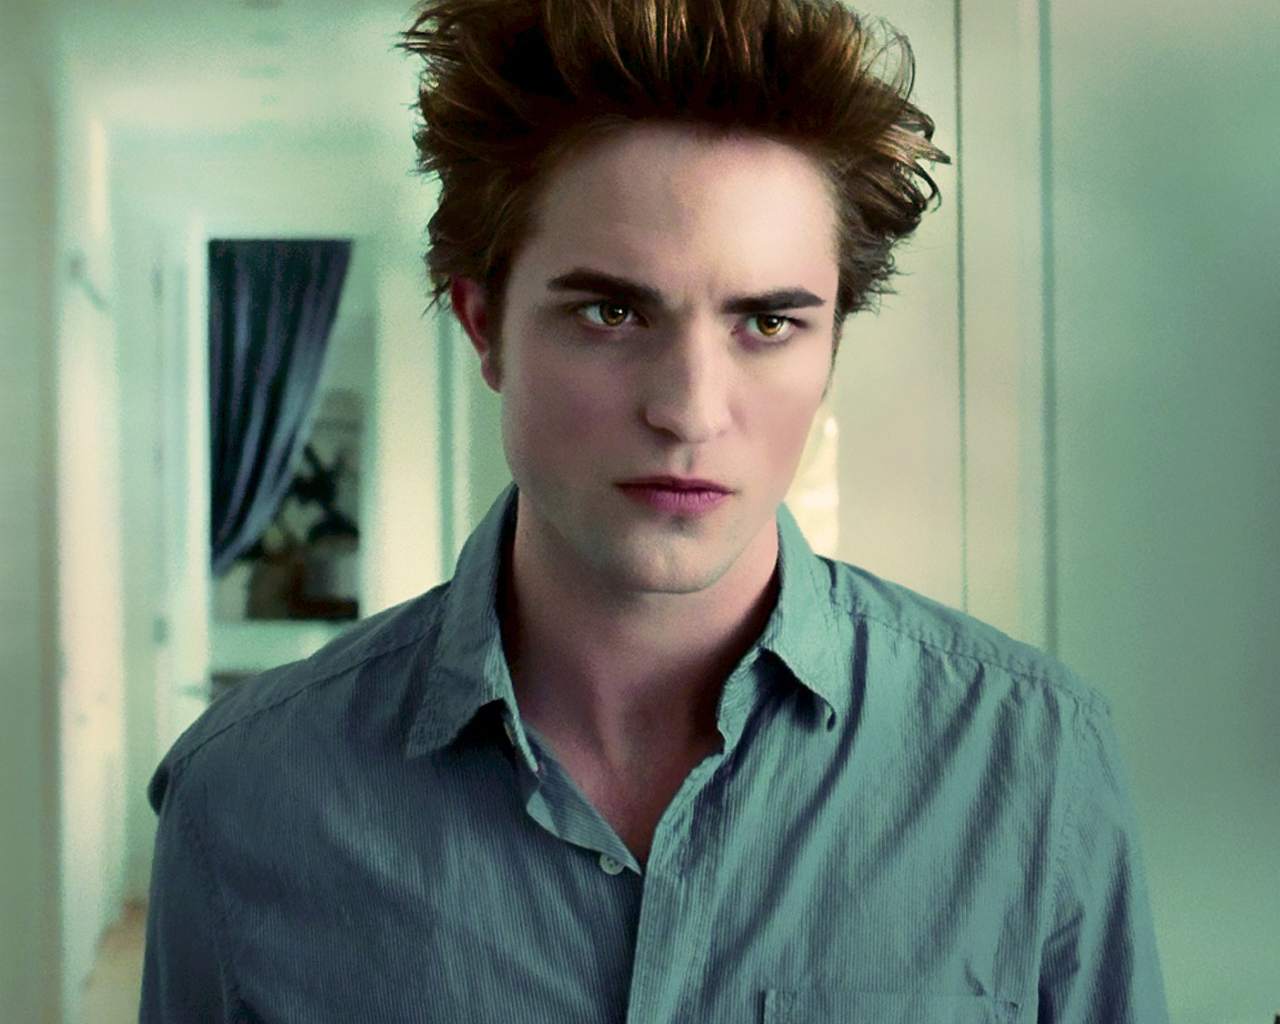 Edward - Edward Cullen Photo (32459699) - Fanpop fanclubs